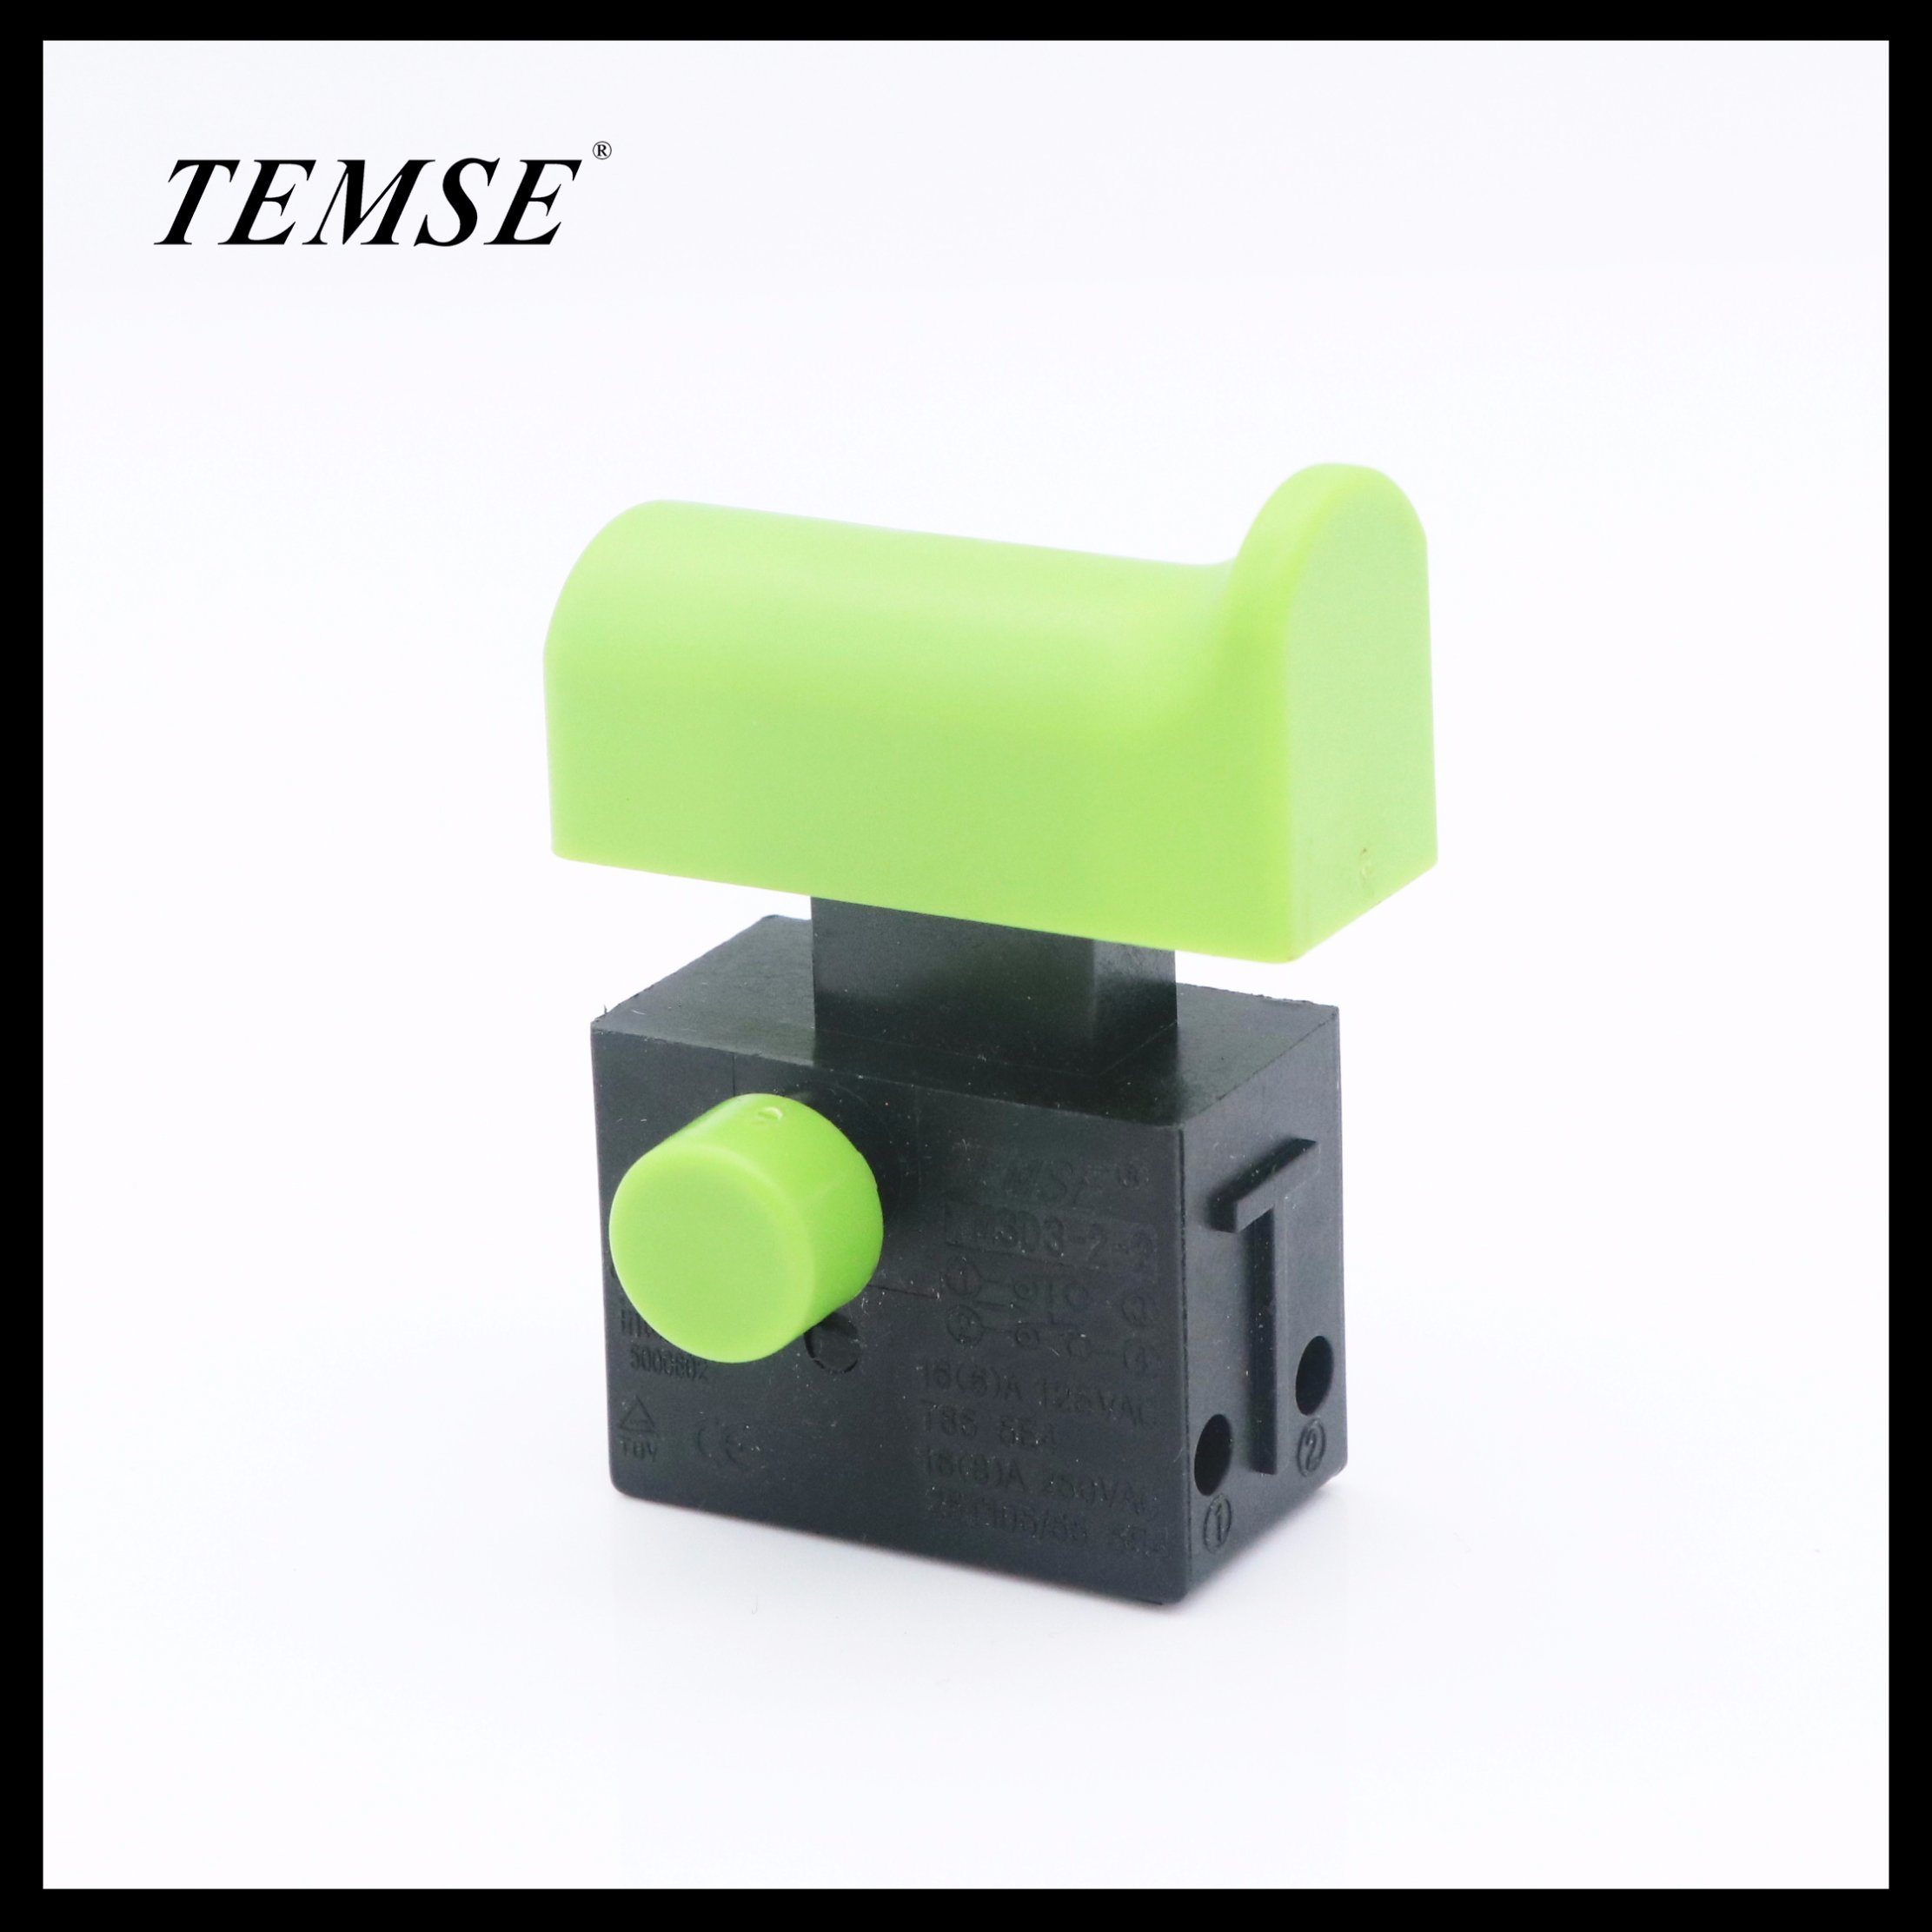 10 AC 125V 16 6 A 250V 8 A DPST NO Trigger Switch`for Electric Hammer Drill L!Y